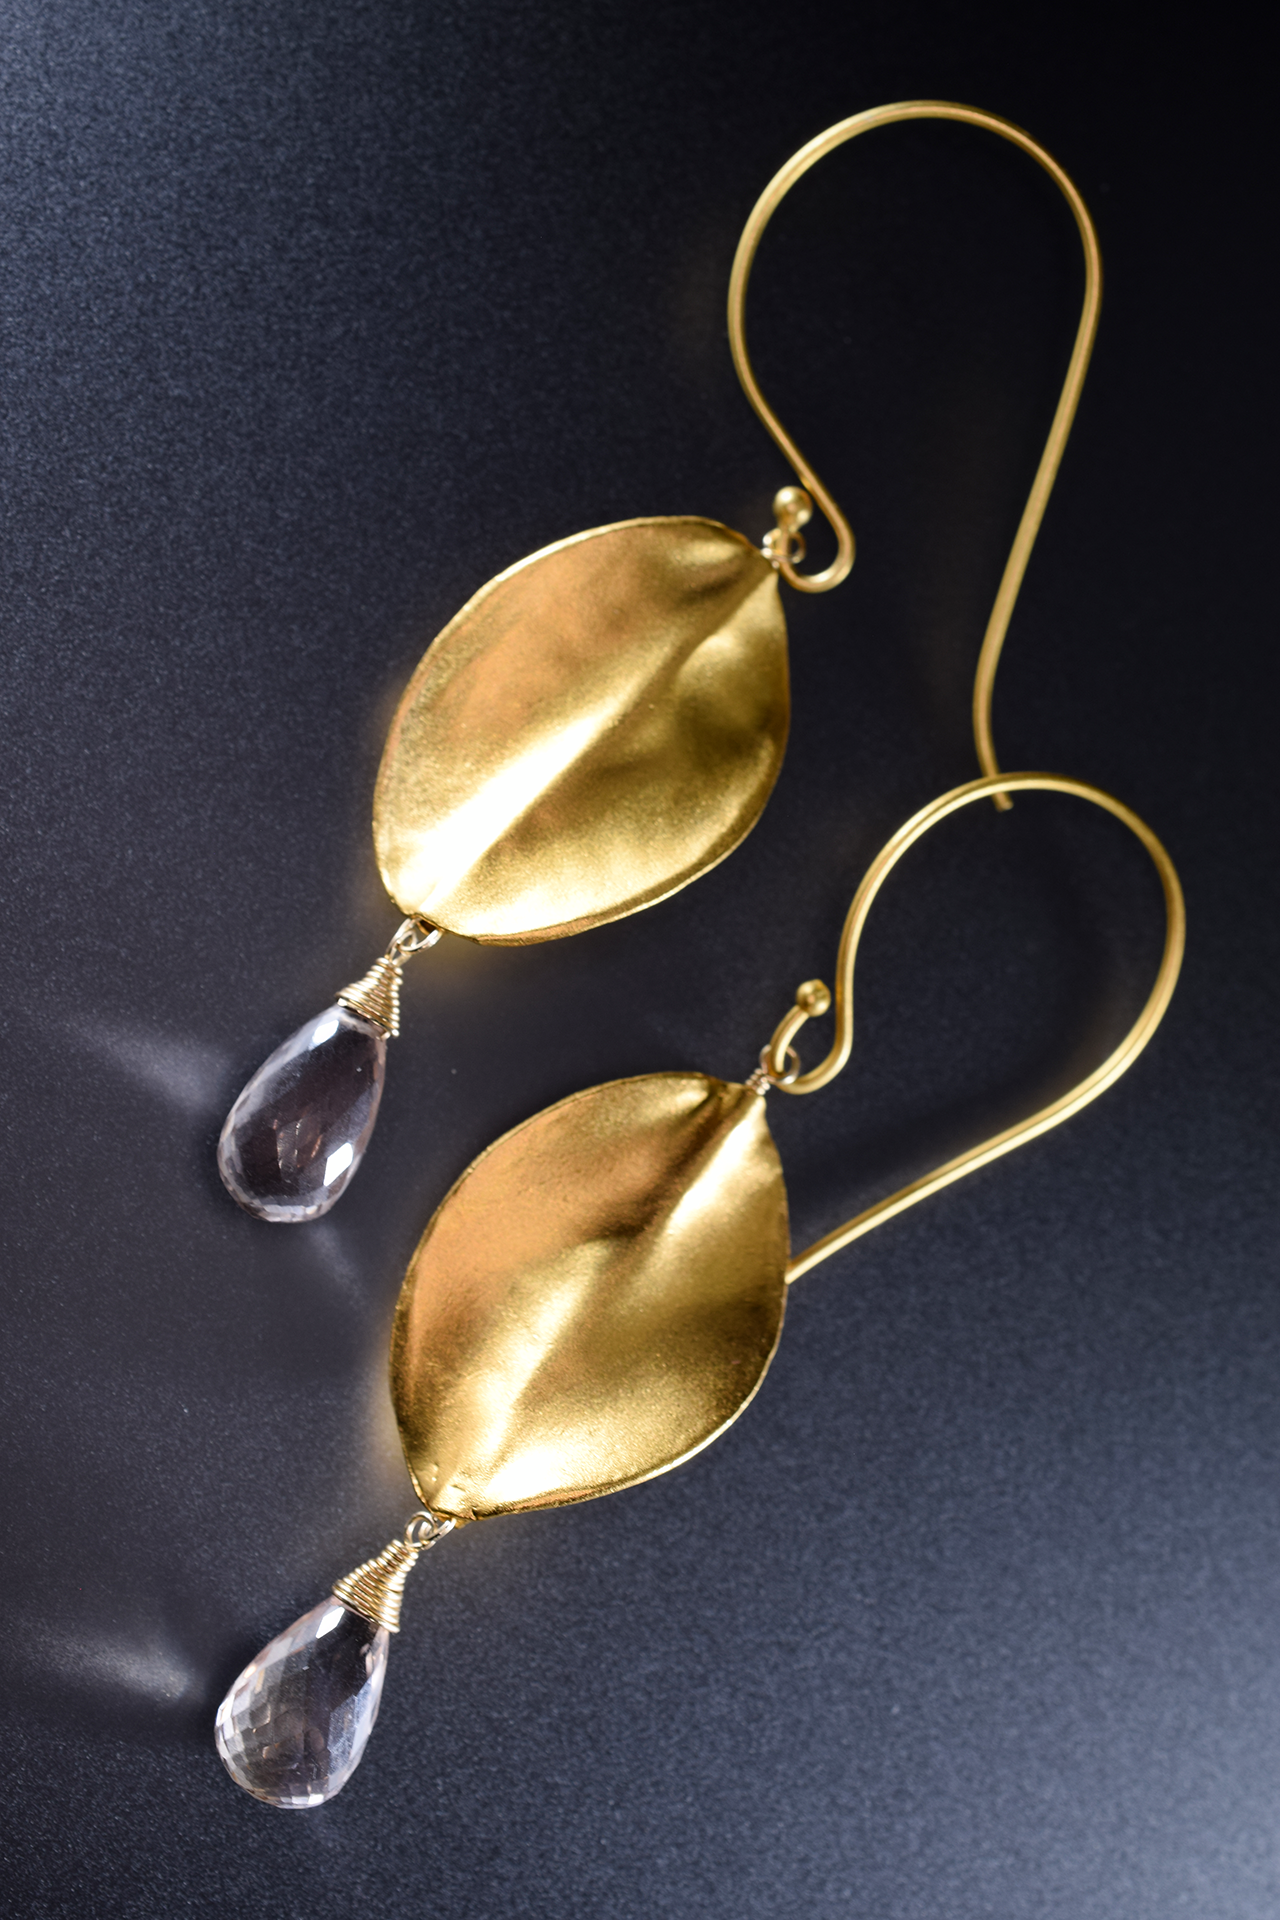 brushed gold oval drop with gemstone briolettes accents